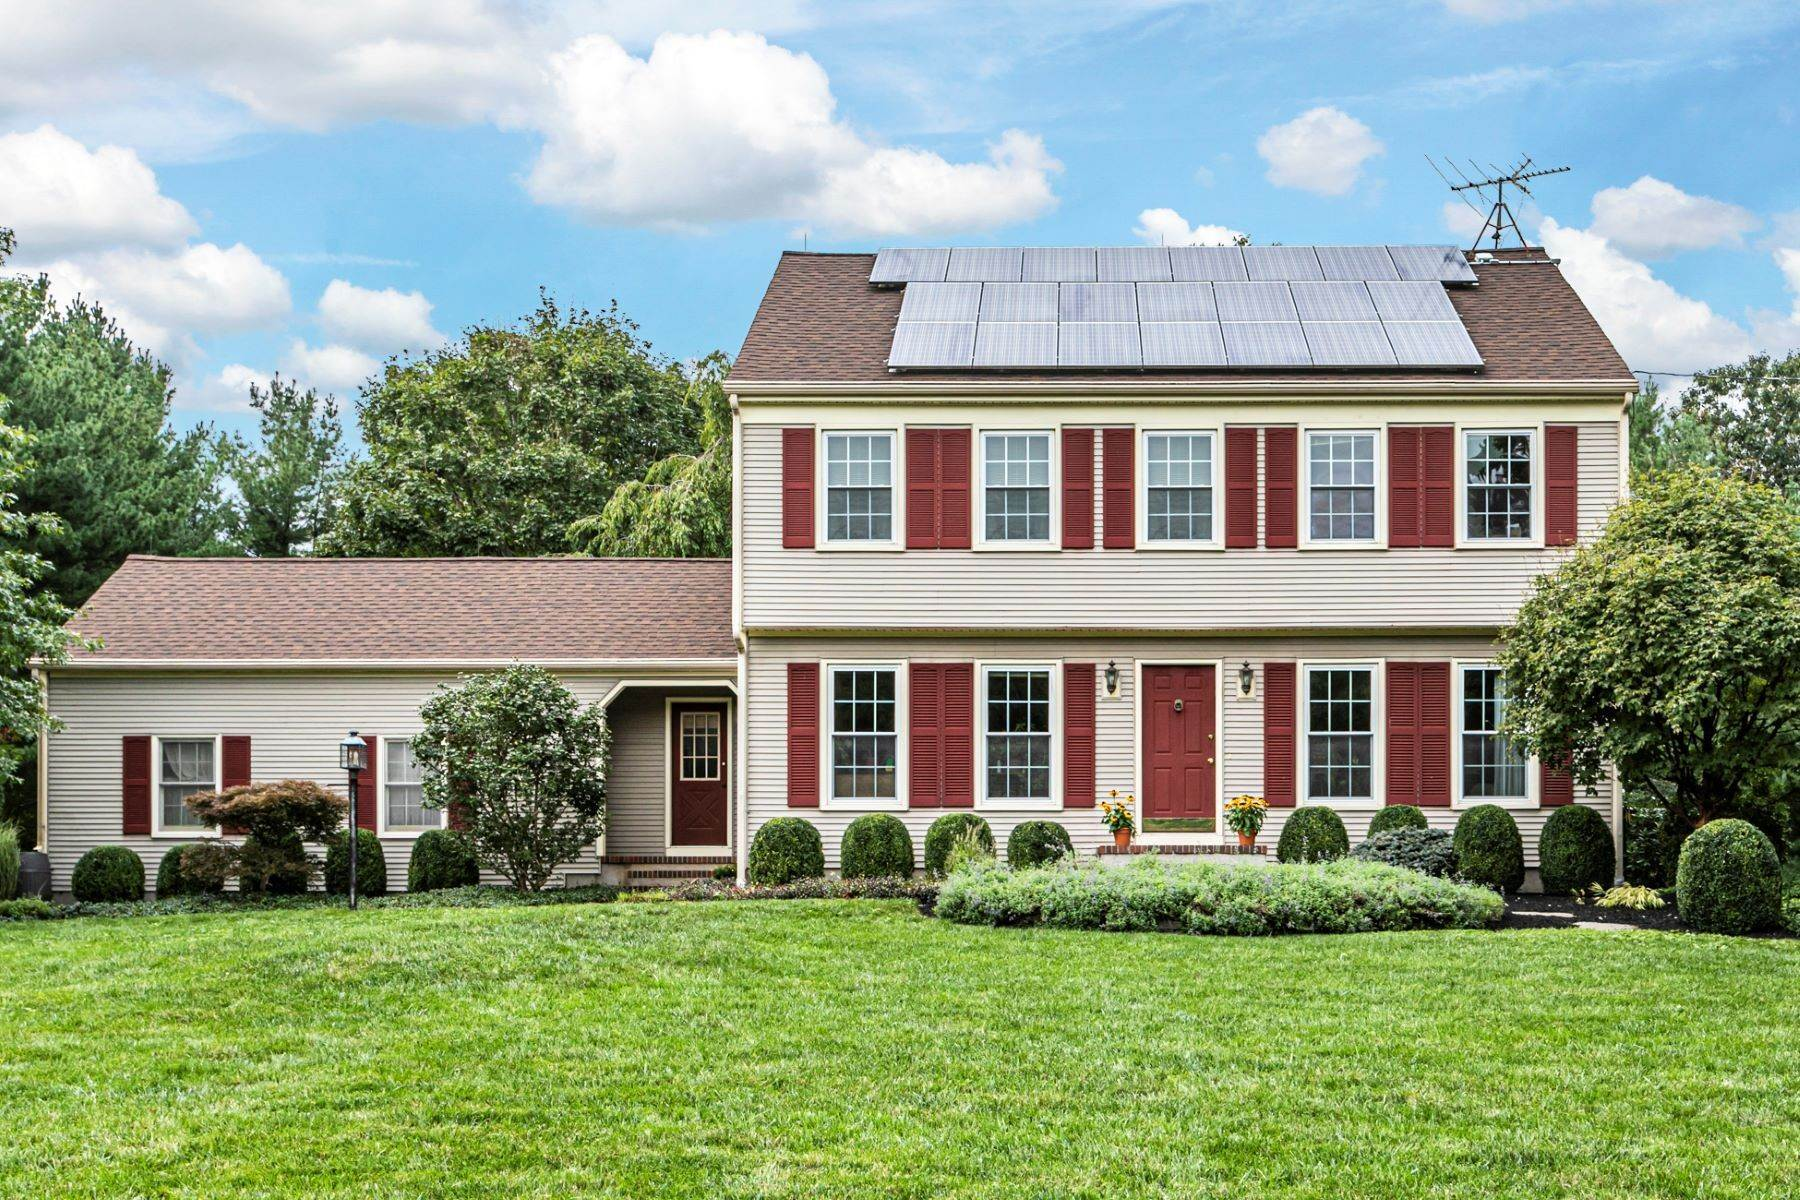 Single Family Homes for Sale at Timeless Floor Plan With Newer Kitchen and Baths 470 Millstone River Road, Belle Mead, New Jersey 08502 United States